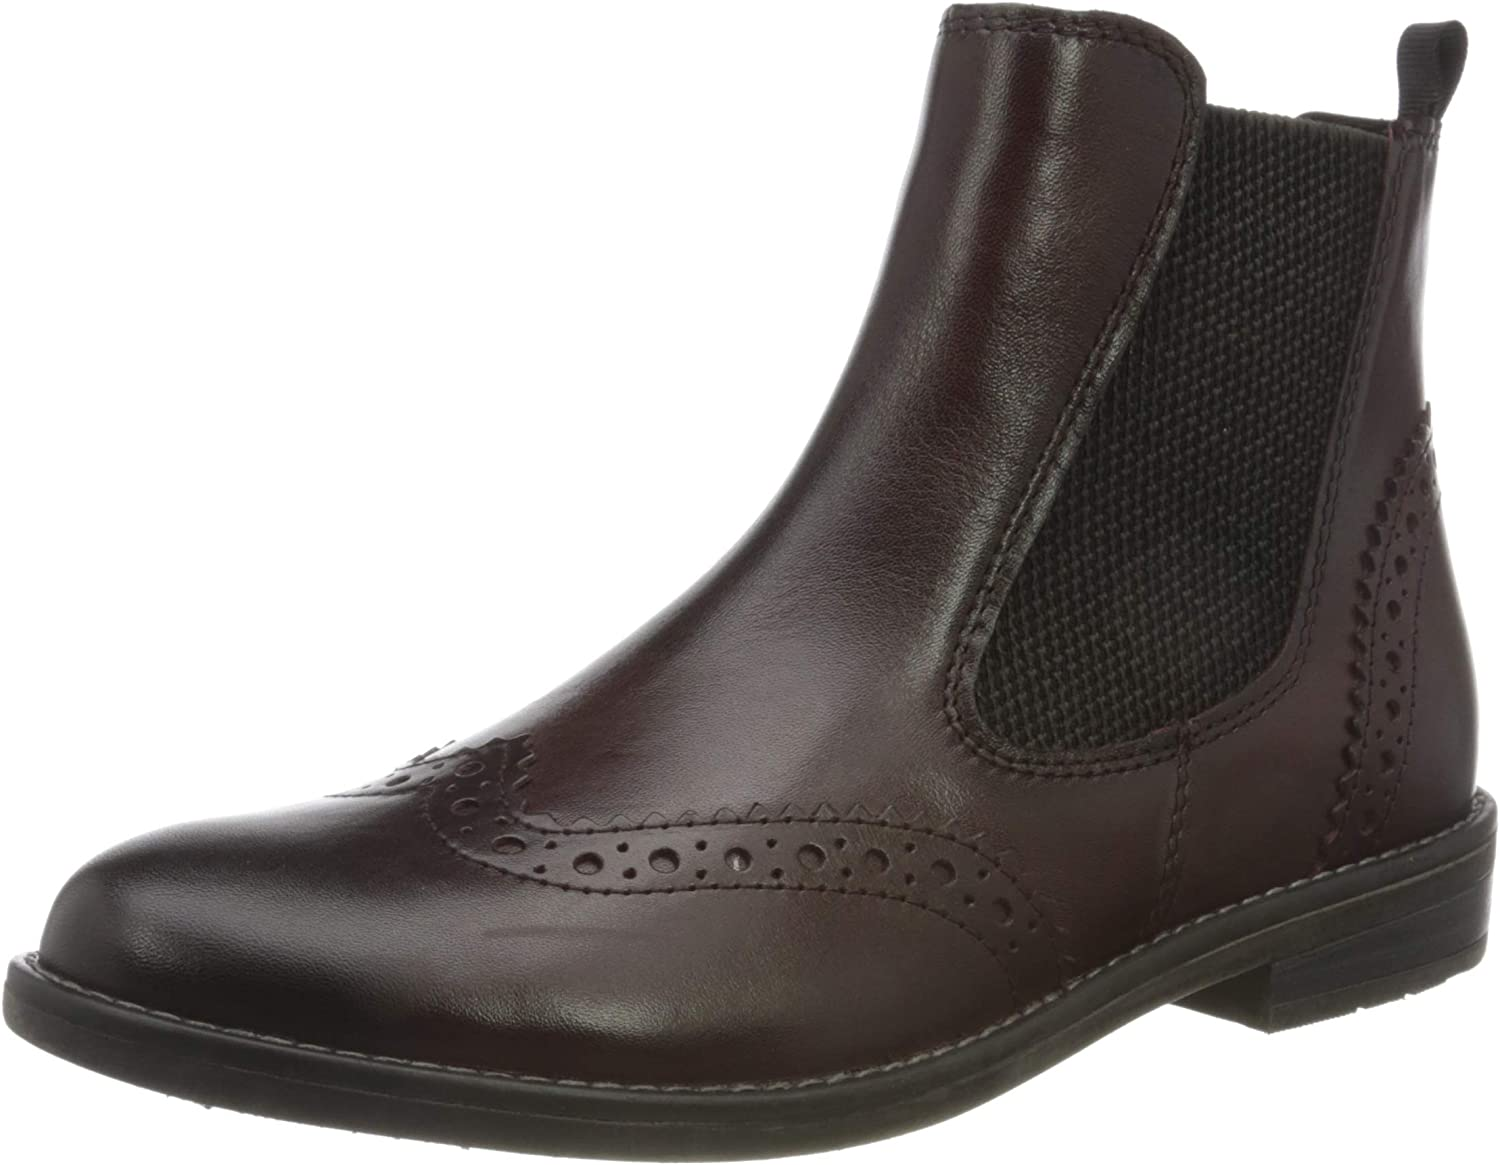 Marco Tozzi Quality inspection Women's Free shipping Chelsea 2-2-25365-35 Boot